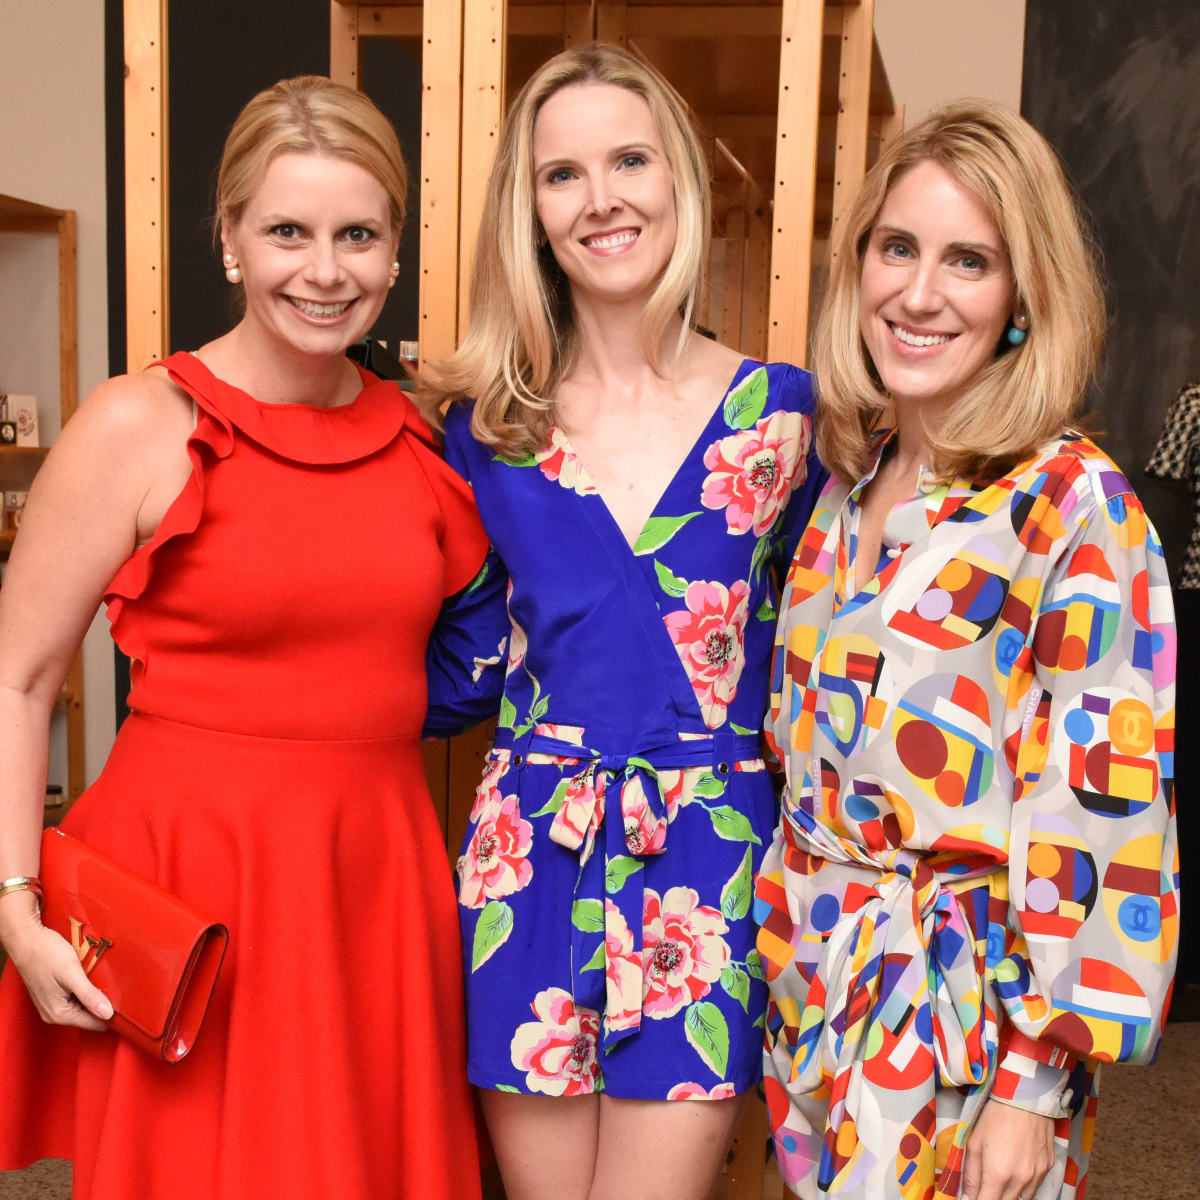 Valerie Dieterich, Kirsten McDaniel and Melina McCarty BIshop at Recipe for Success Dress for Dinner event with Lucy Sykes